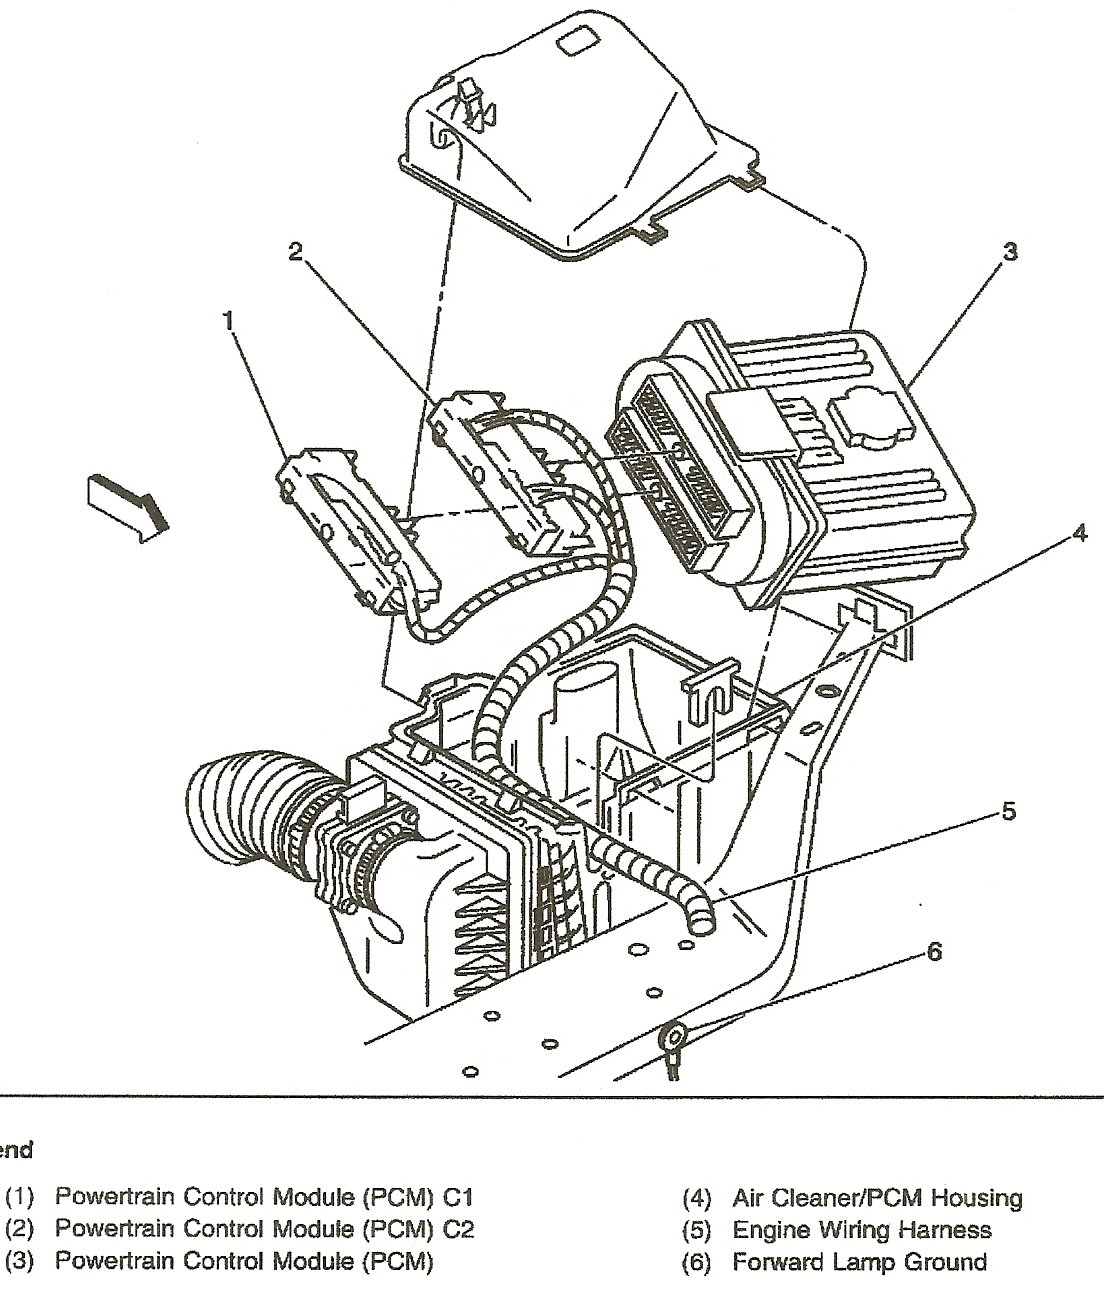 1999 Chevy Venture Engine Diagram on chevy blazer firing order